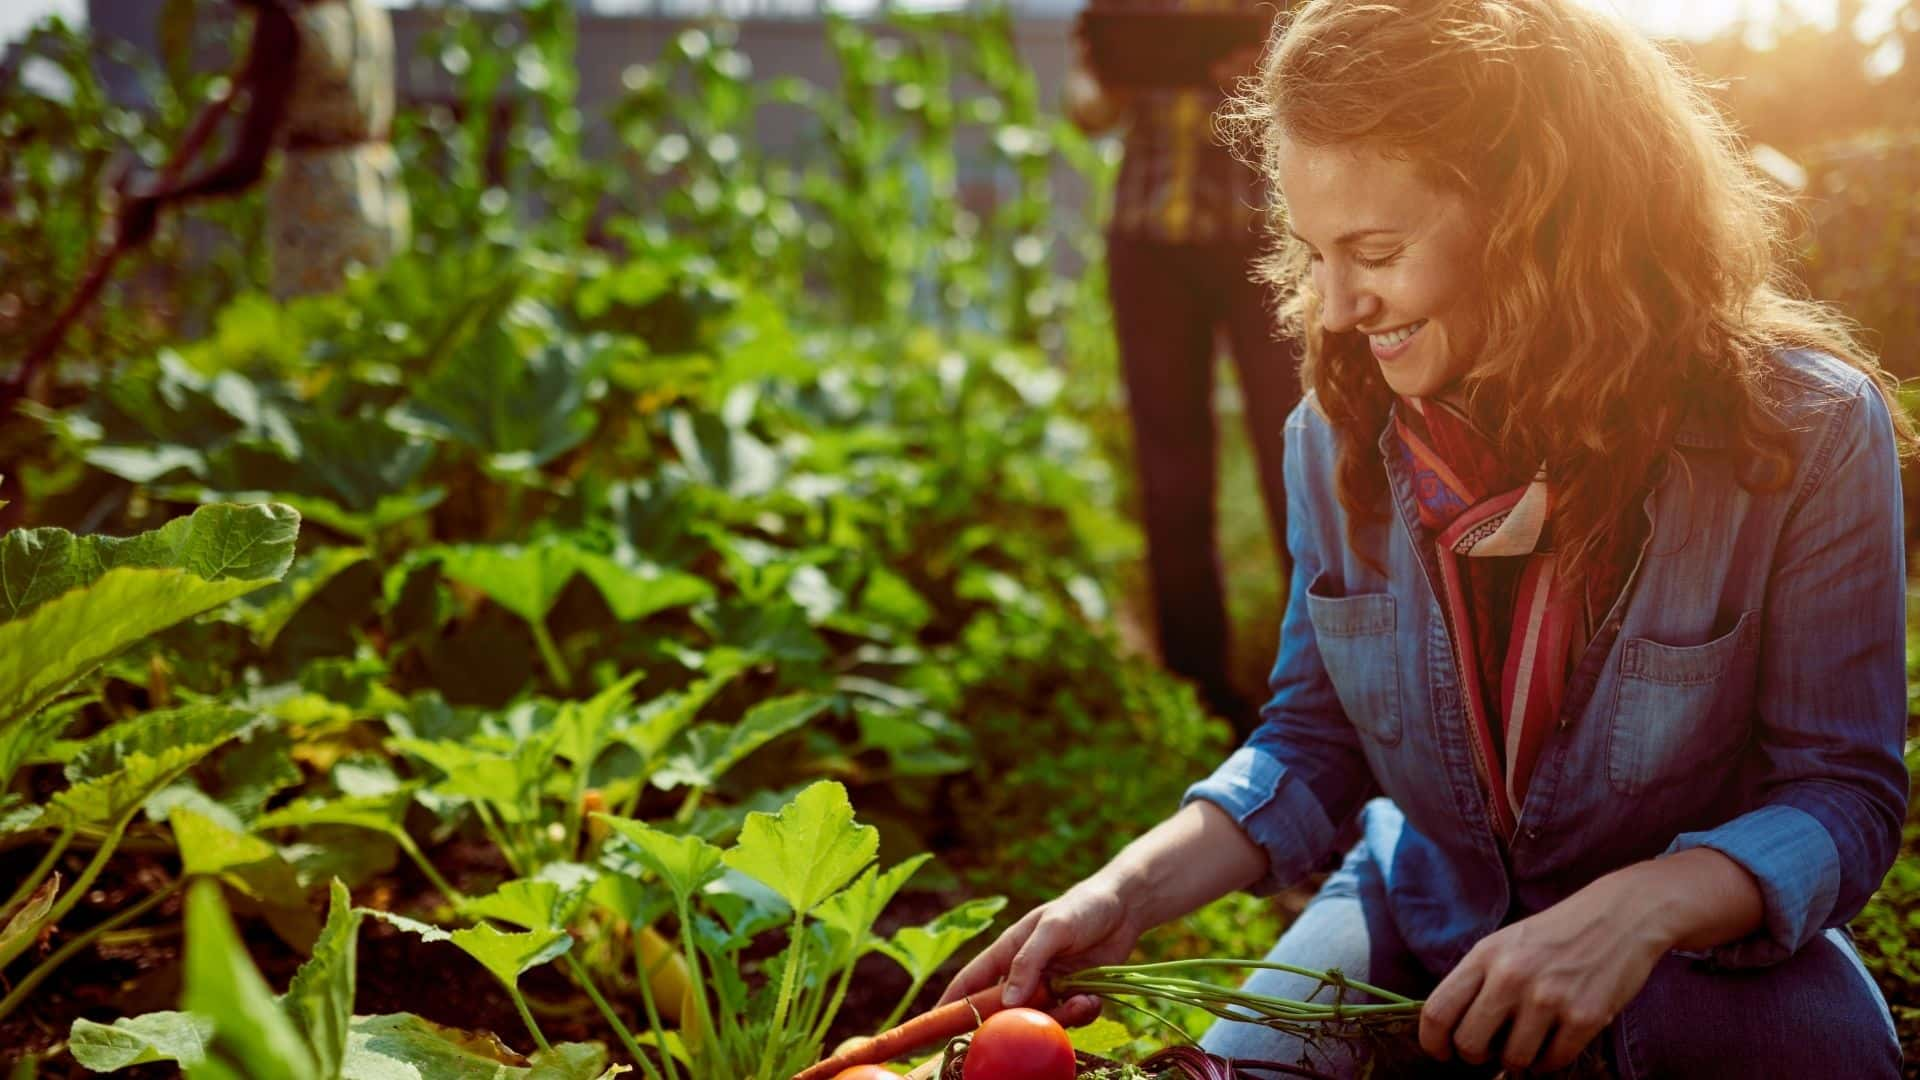 What Are the Most Popular Different Types of Gardening - 12 Ideas to Try